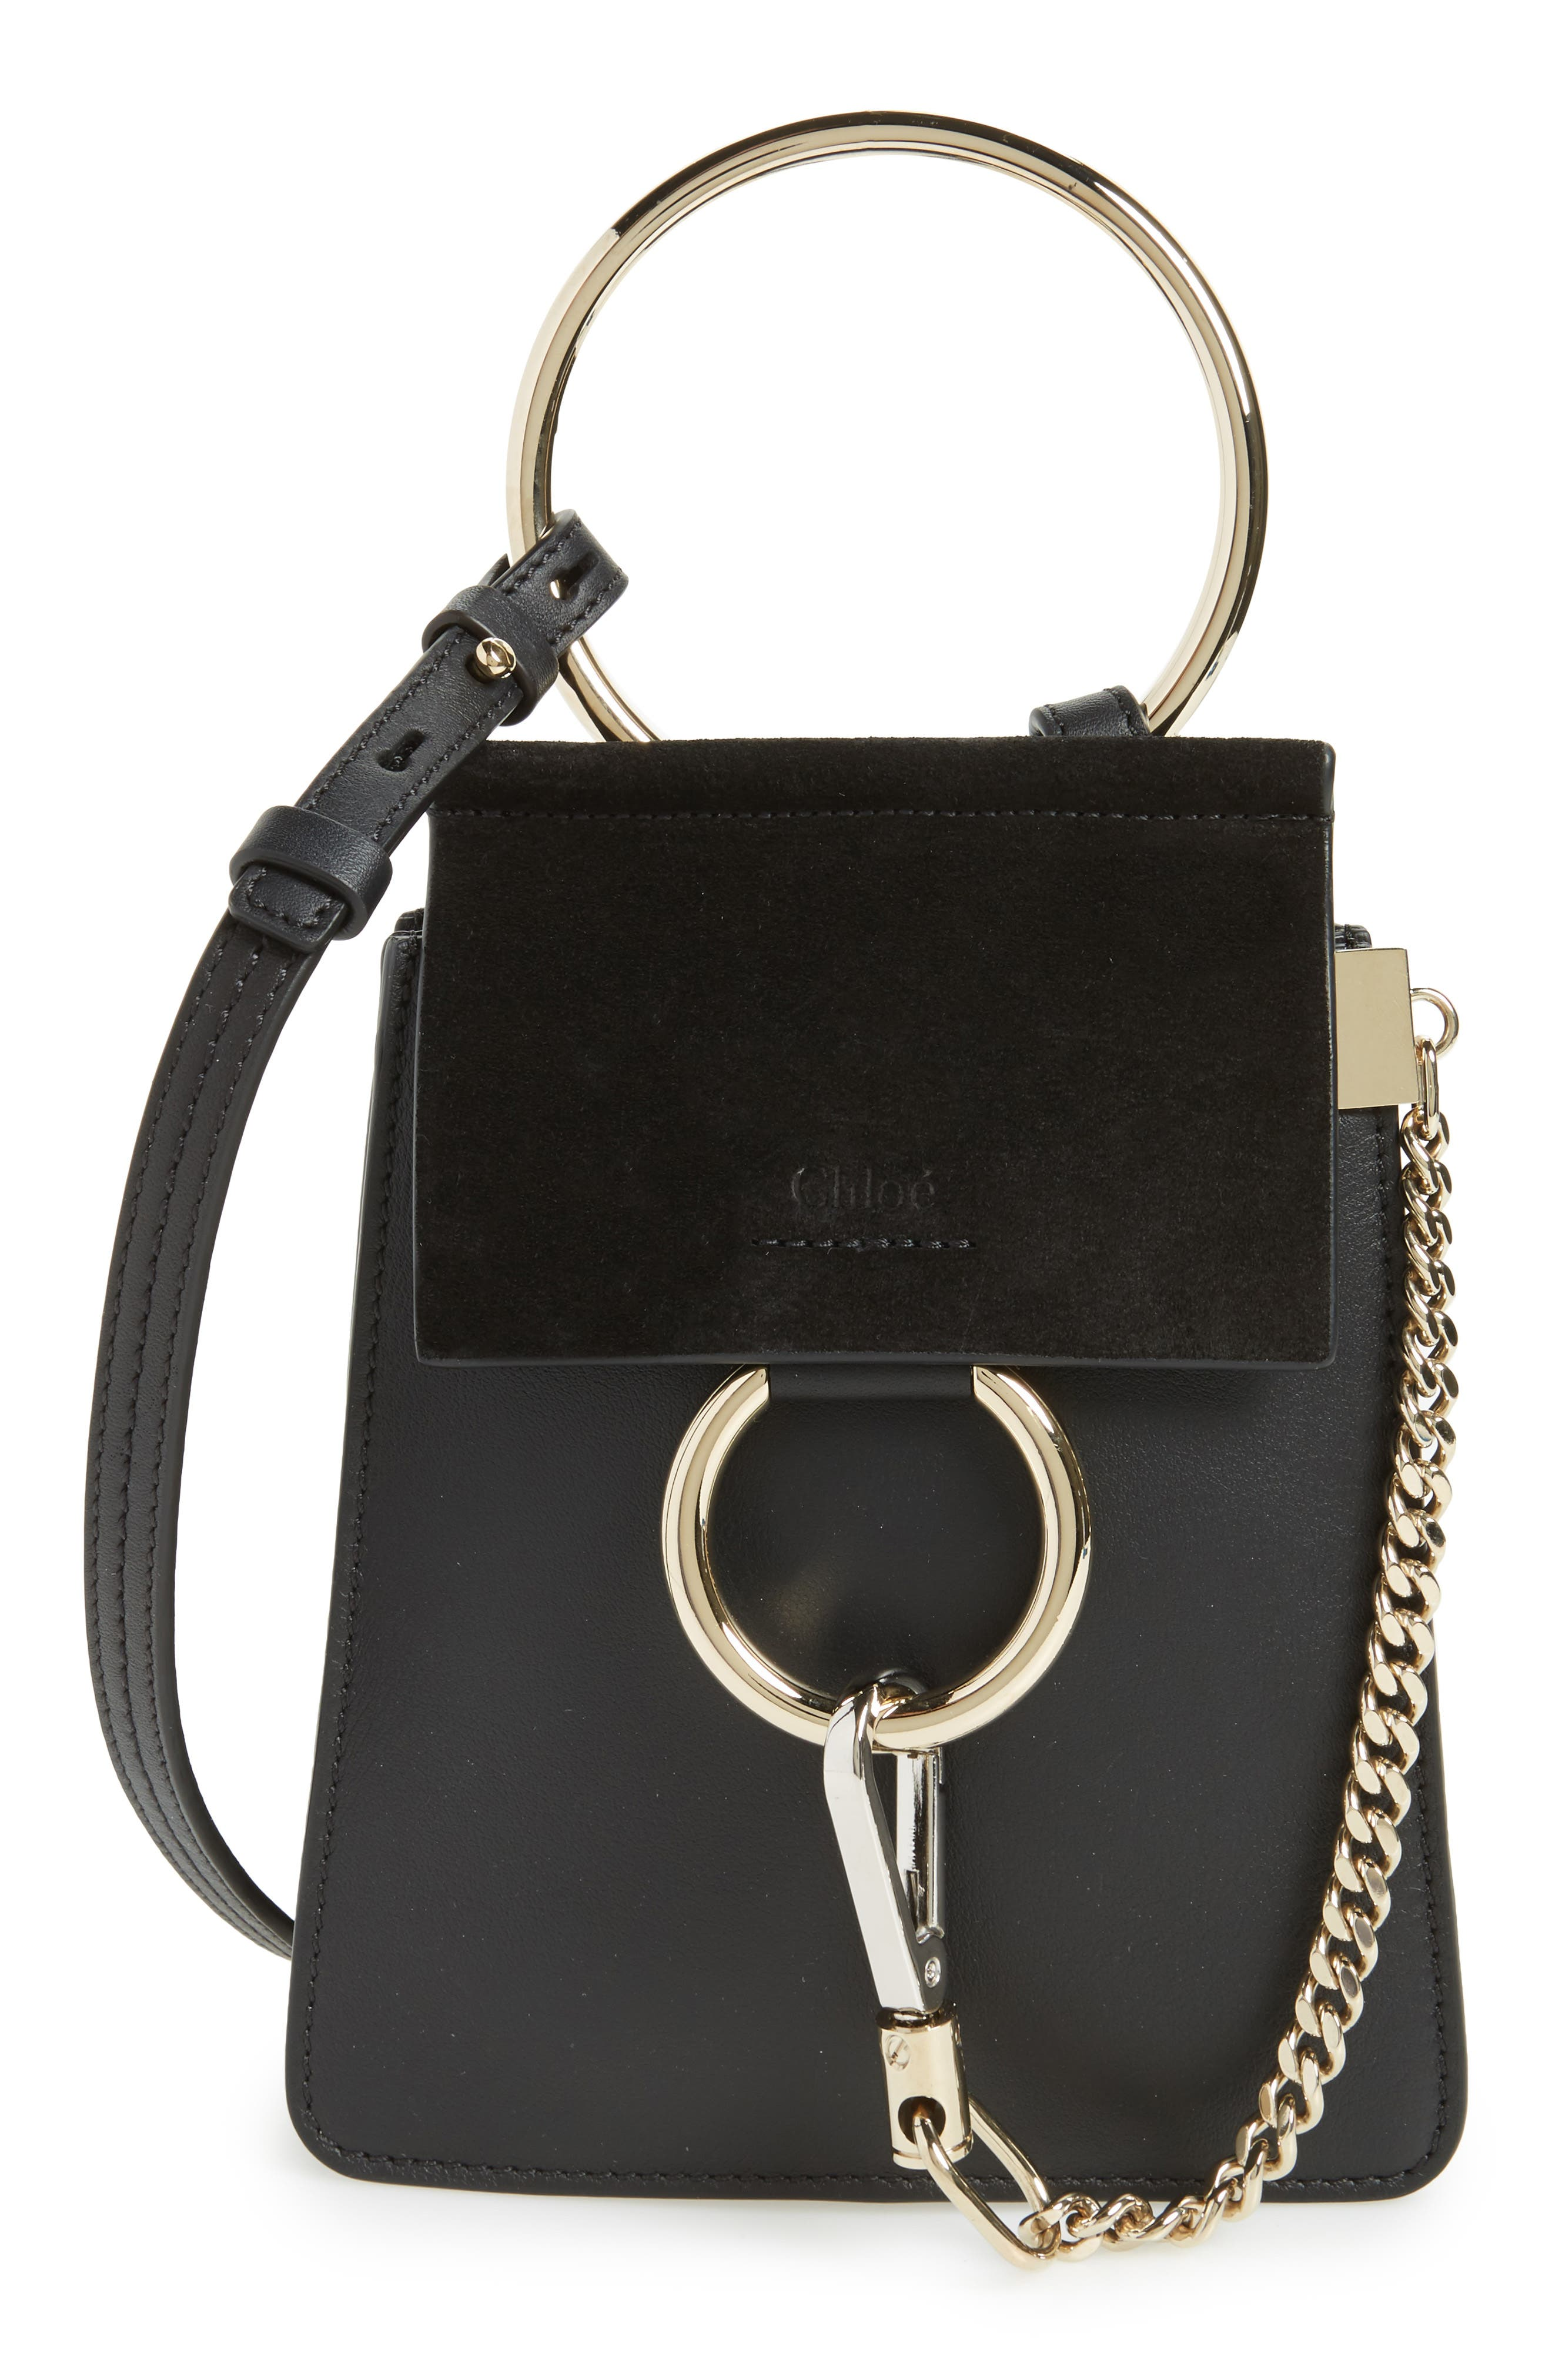 Chloé Faye Small Suede & Leather Bracelet Bag